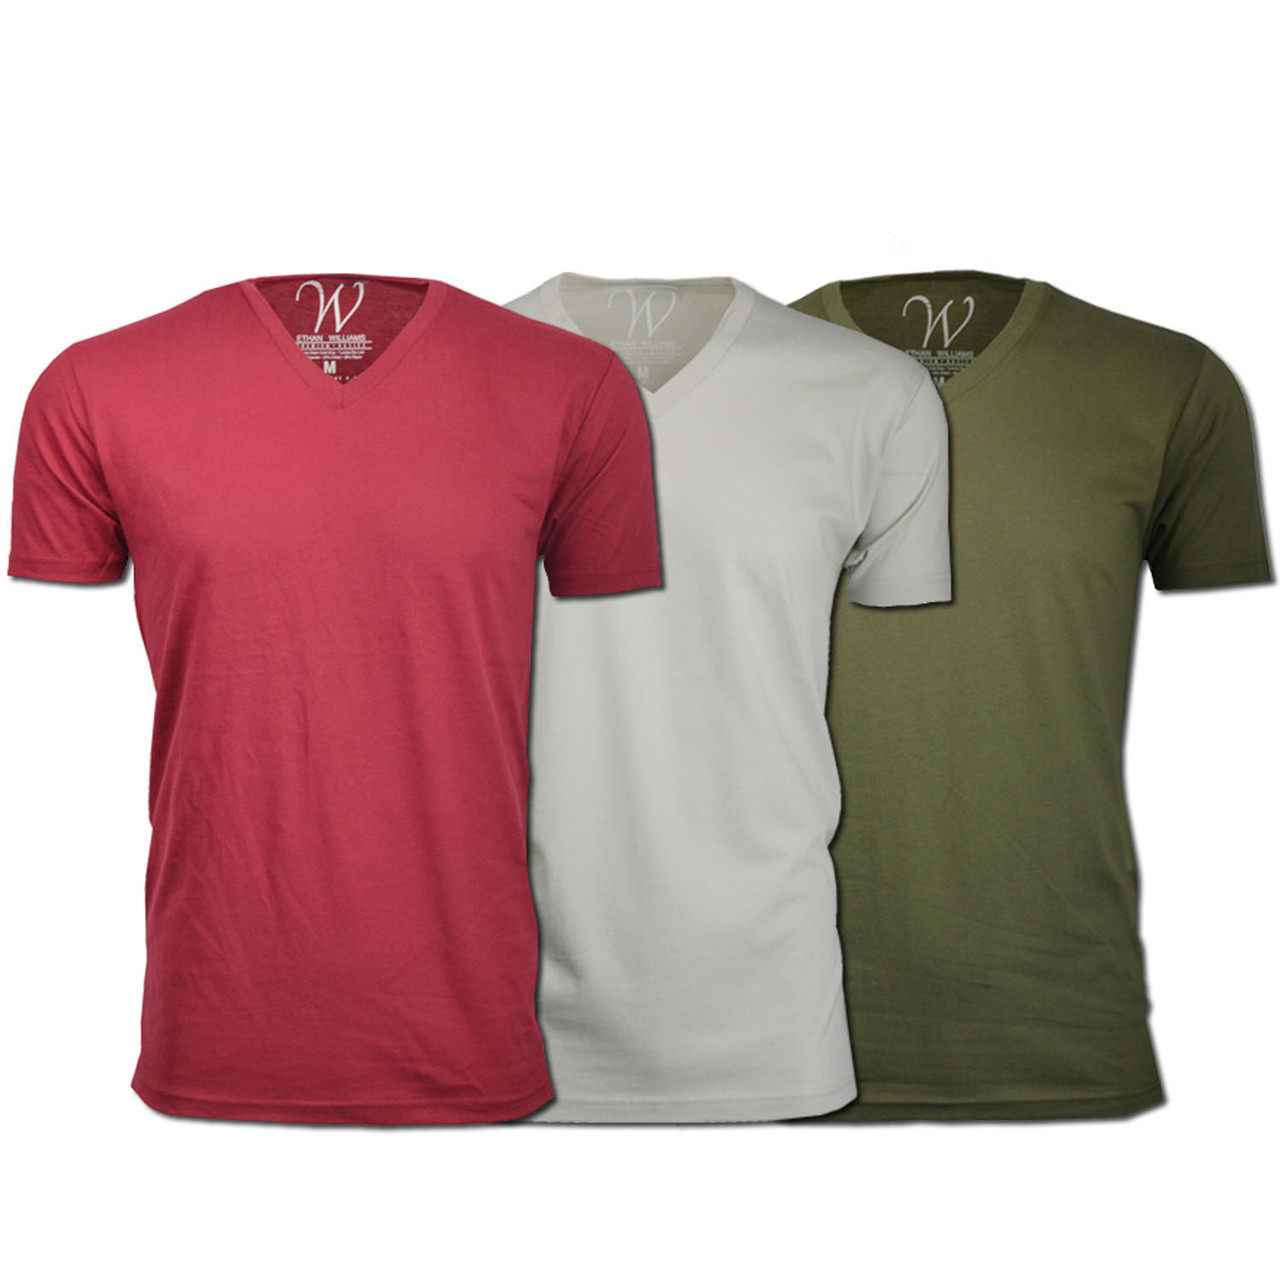 Men's Ethan Williams 3-Pack Sueded V-Neck T-shirts